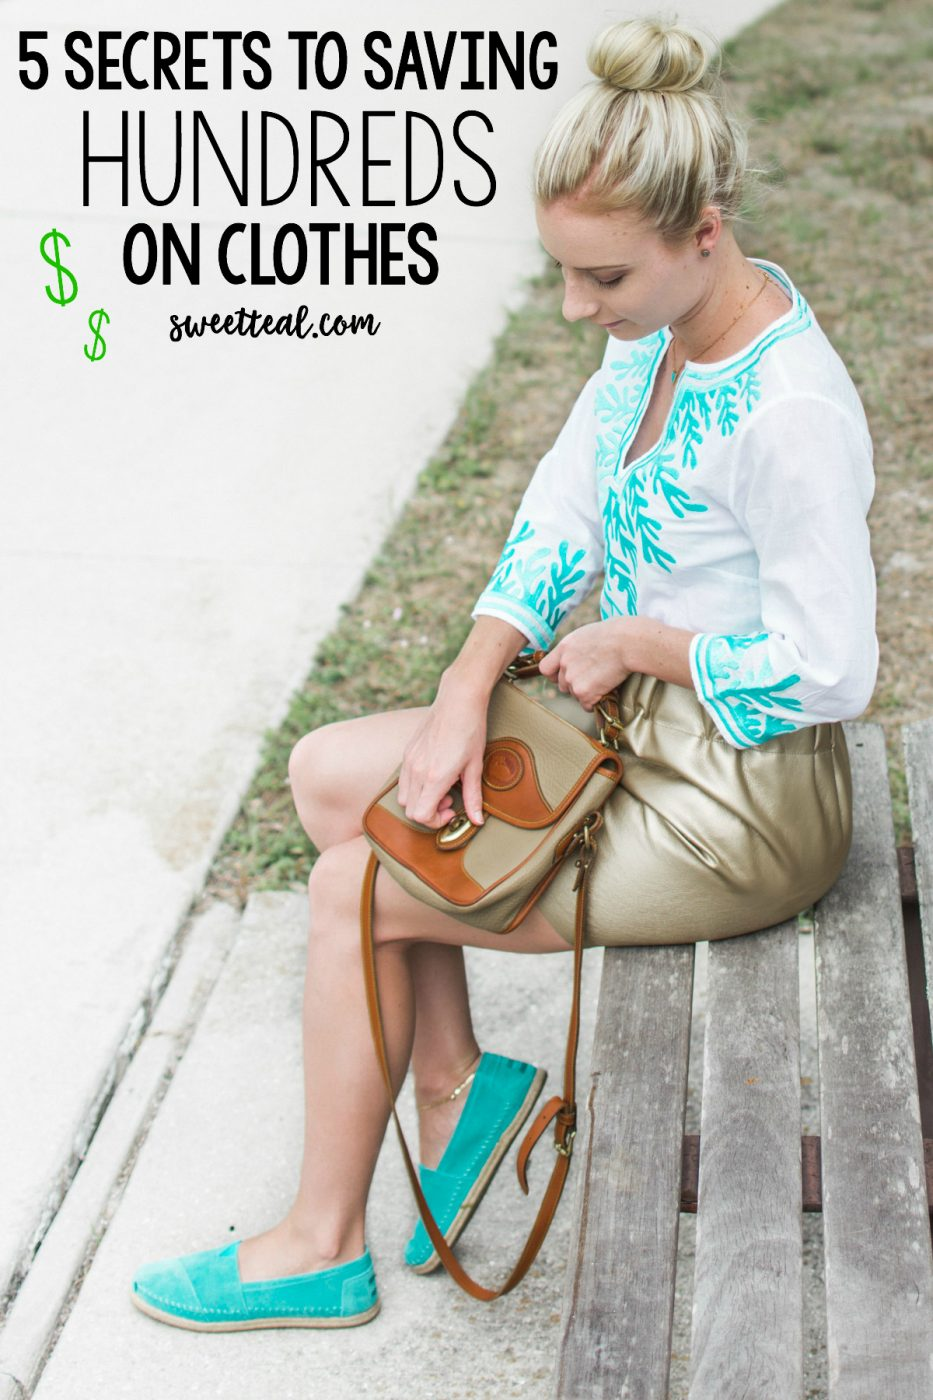 5 Secrets To Saving Hundreds On Clothes - Jenny Bess of Sweet Teal